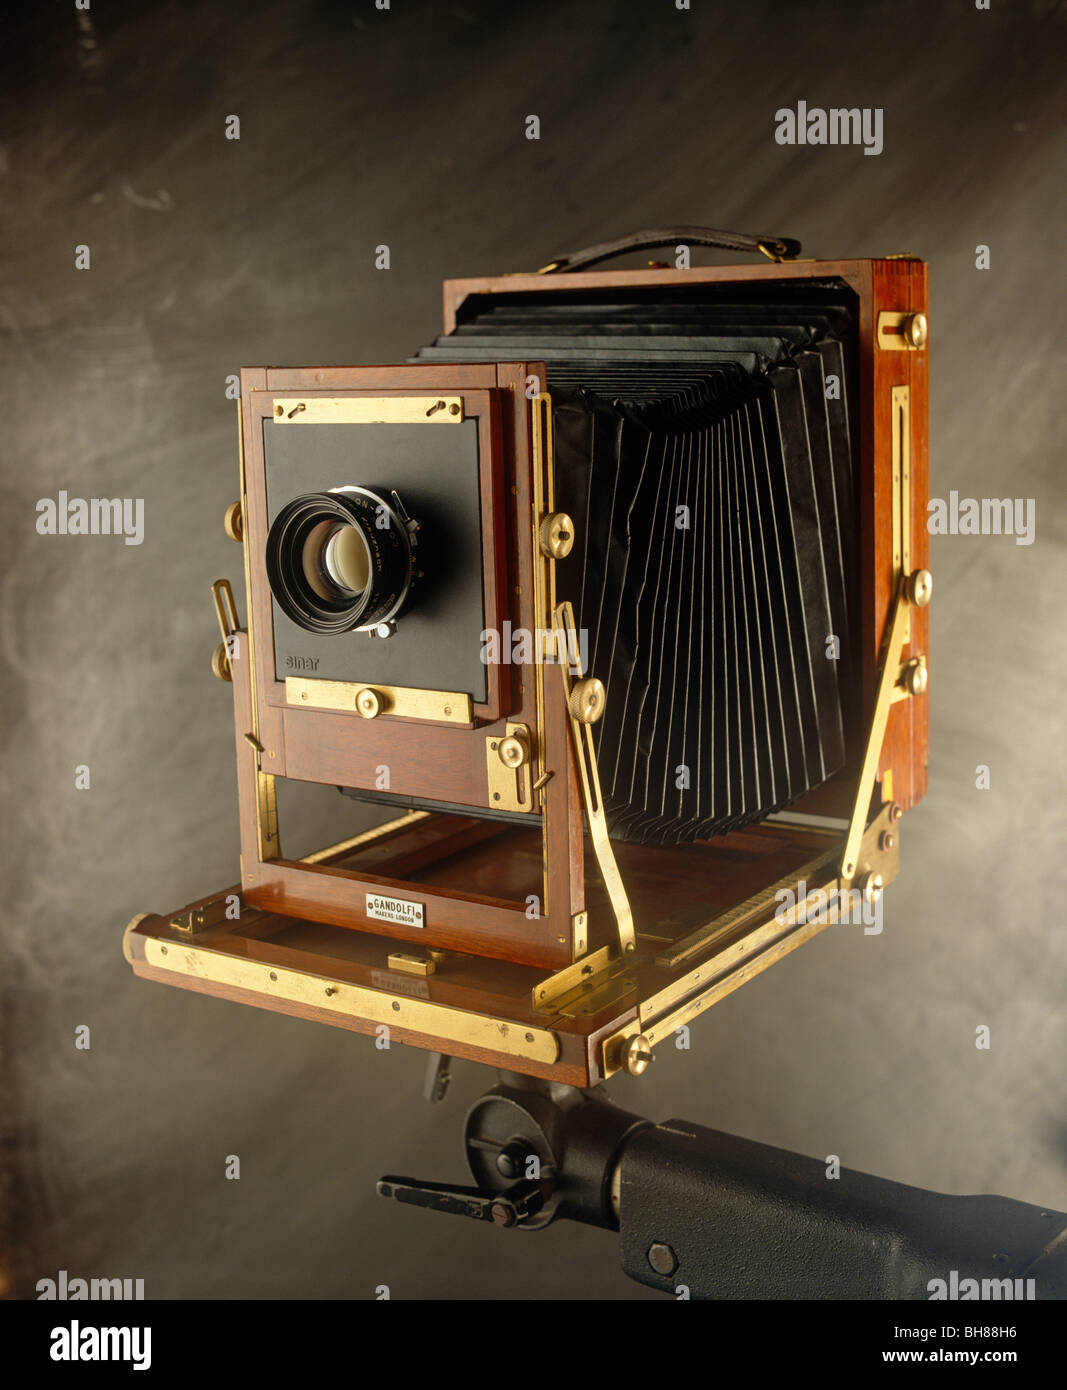 Old fashioned camera - Stock Image